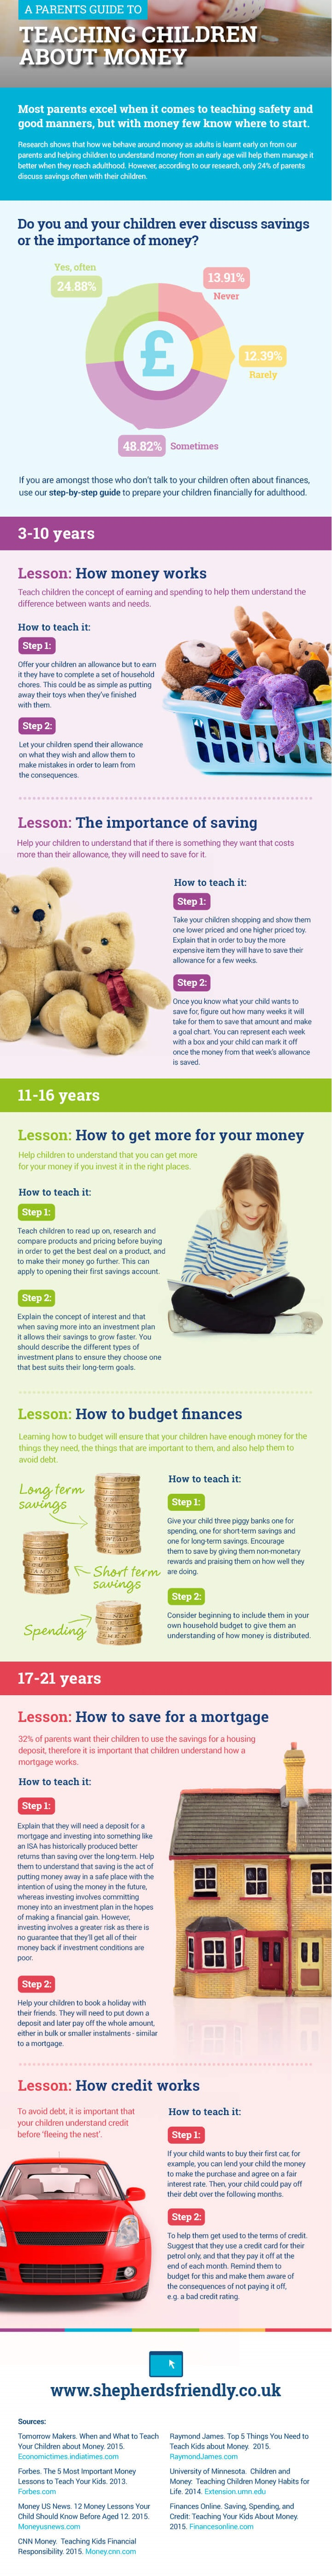 how-to-teach-your-child-about-money-management2